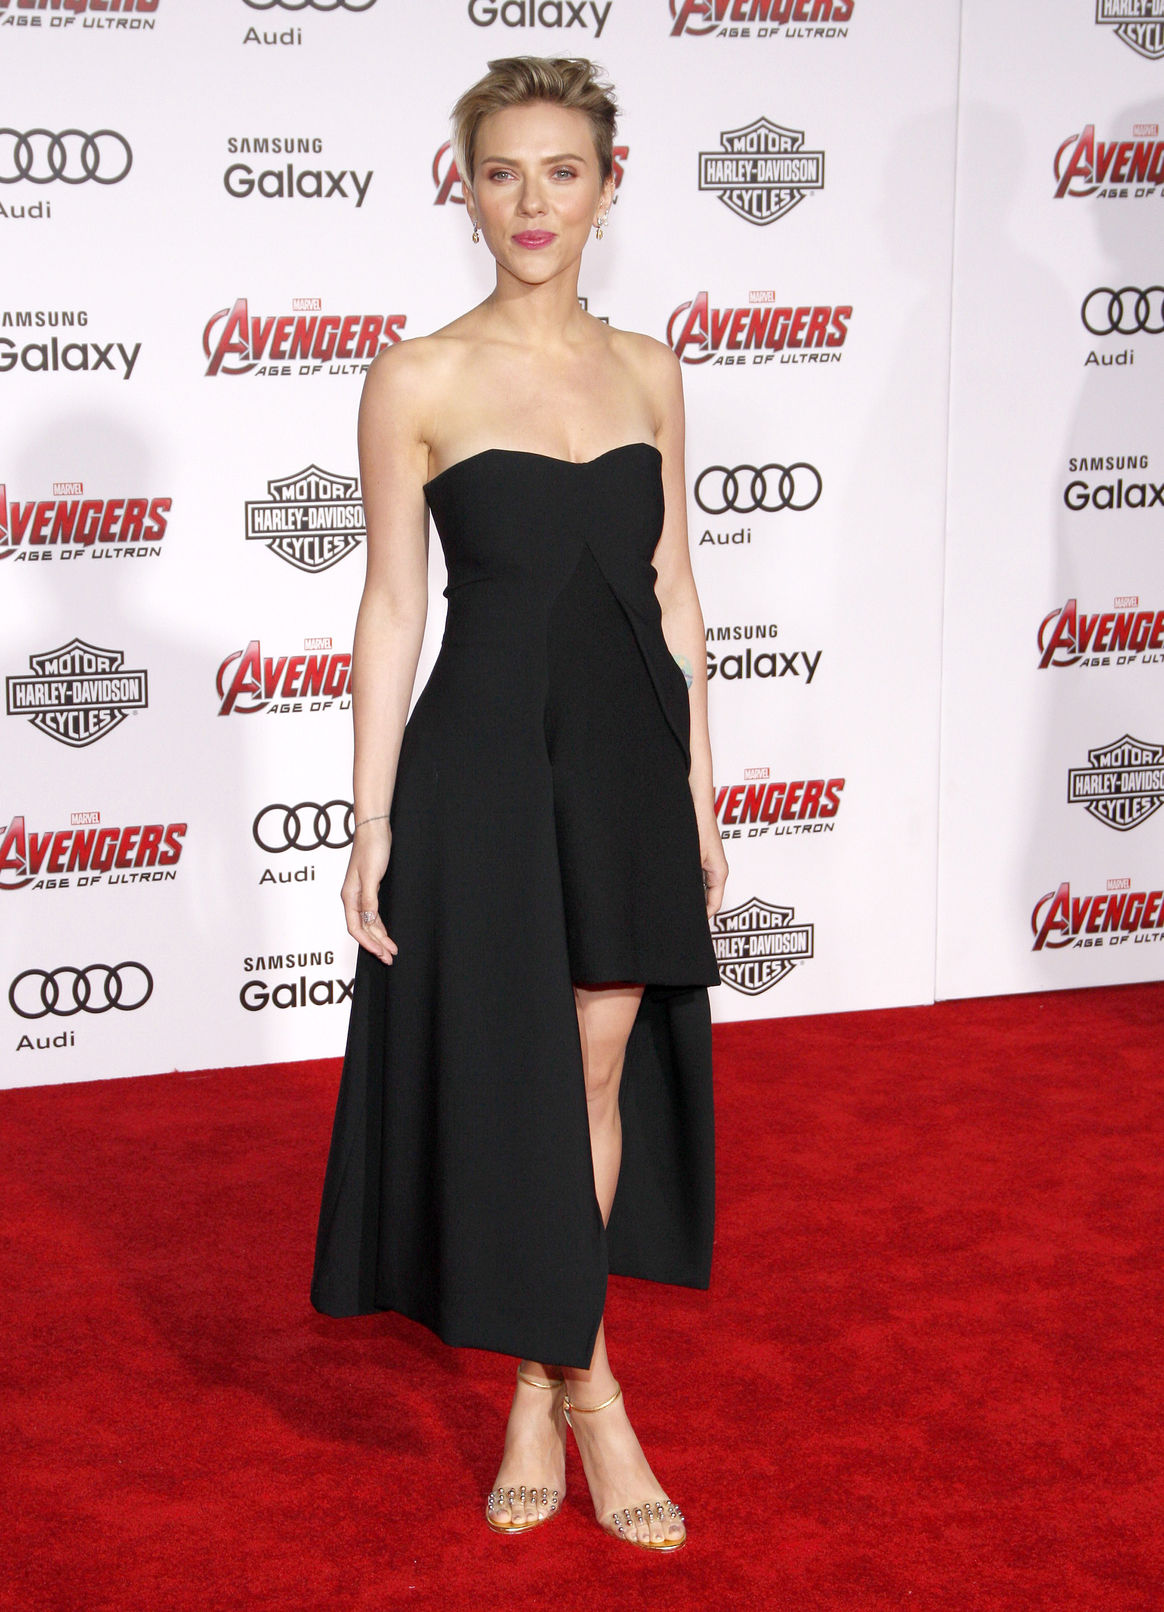 Scarlett Johansson at the World premiere of Marvel's 'Avengers: Age Of Ultron', 2015 By buzzfuss / 123RF Stock Photo